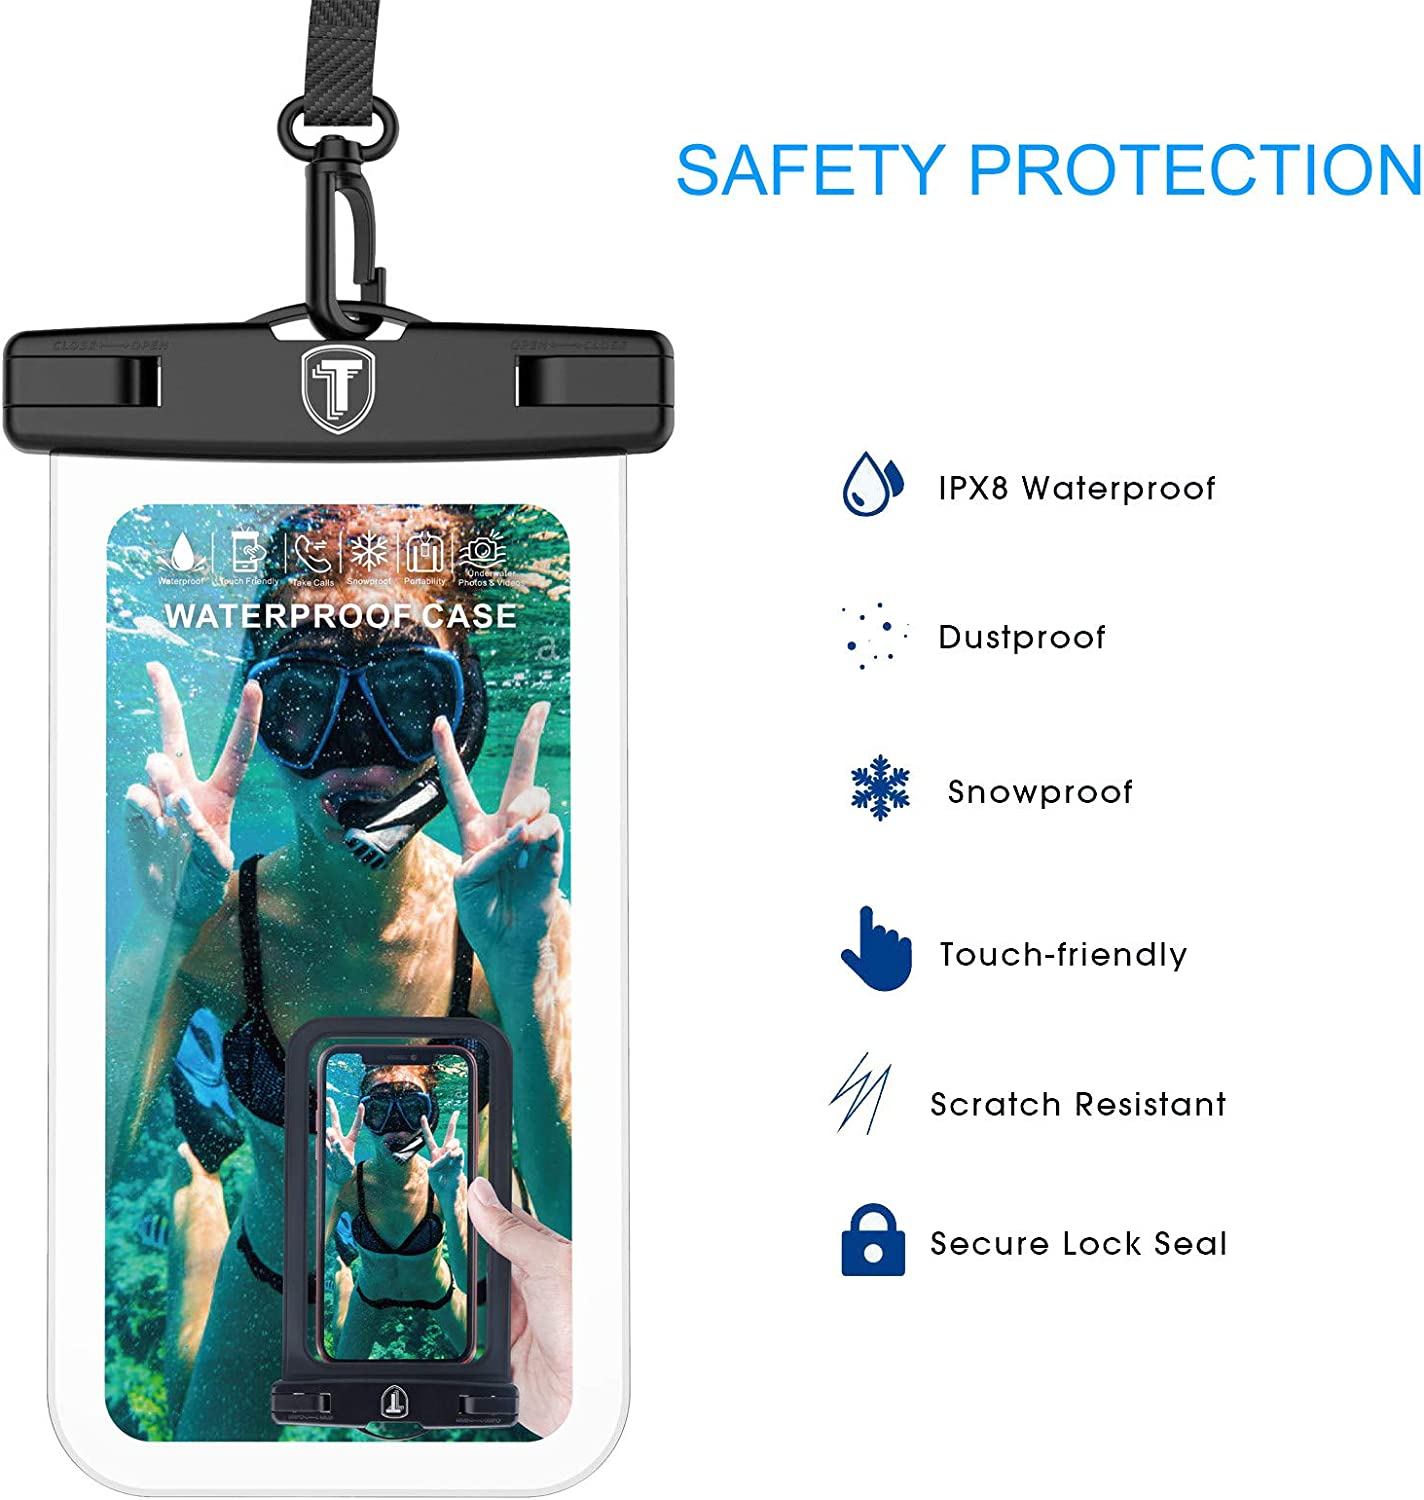 Tiflook Waterproof Pouch Phone Dry Bag Underwater Case Compatible with iPhone 12 Pro Max 11 XR X XS Max 8 7 6S 6 SE Samsung LG Moto TCL Phone Pouch for Beach with Lanyard Neck Strap, Clear (2 Pack)